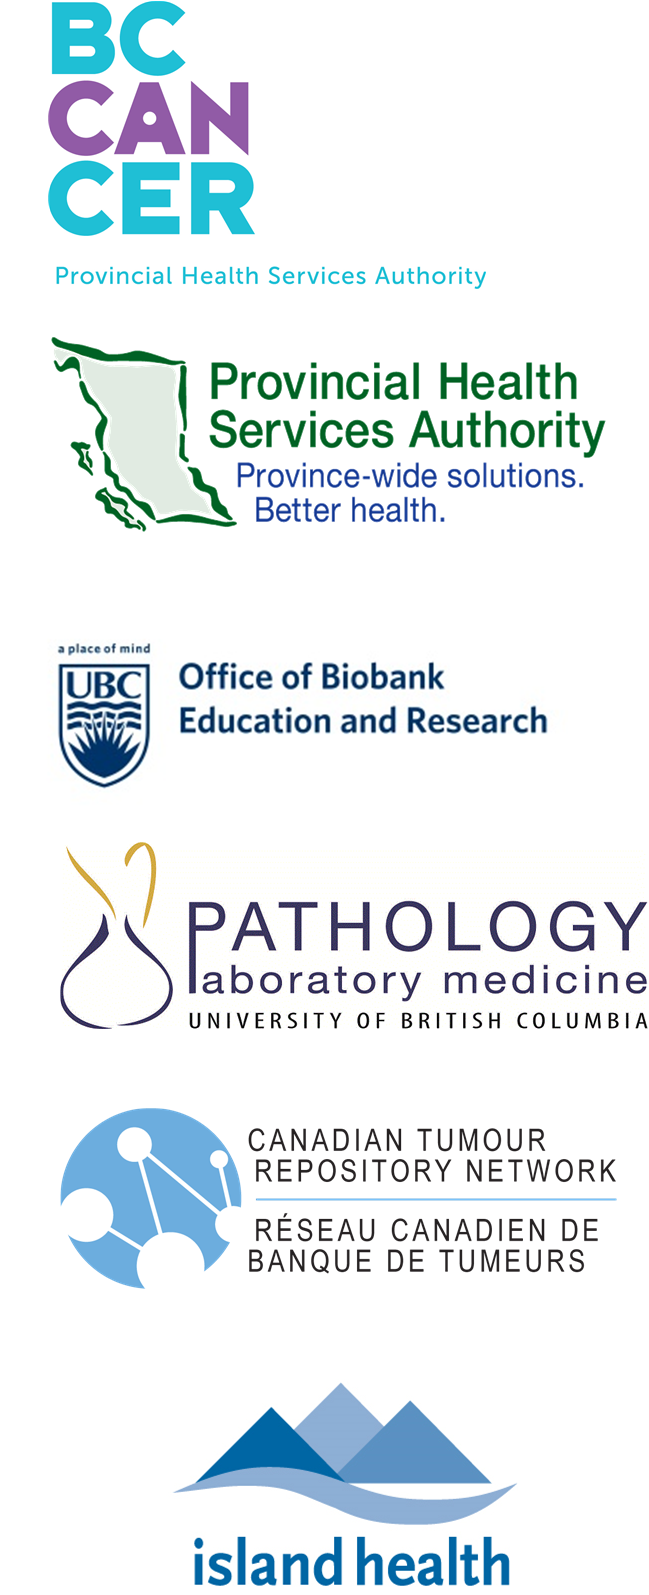 BBRS2 Stakeholders and Collaborators logos